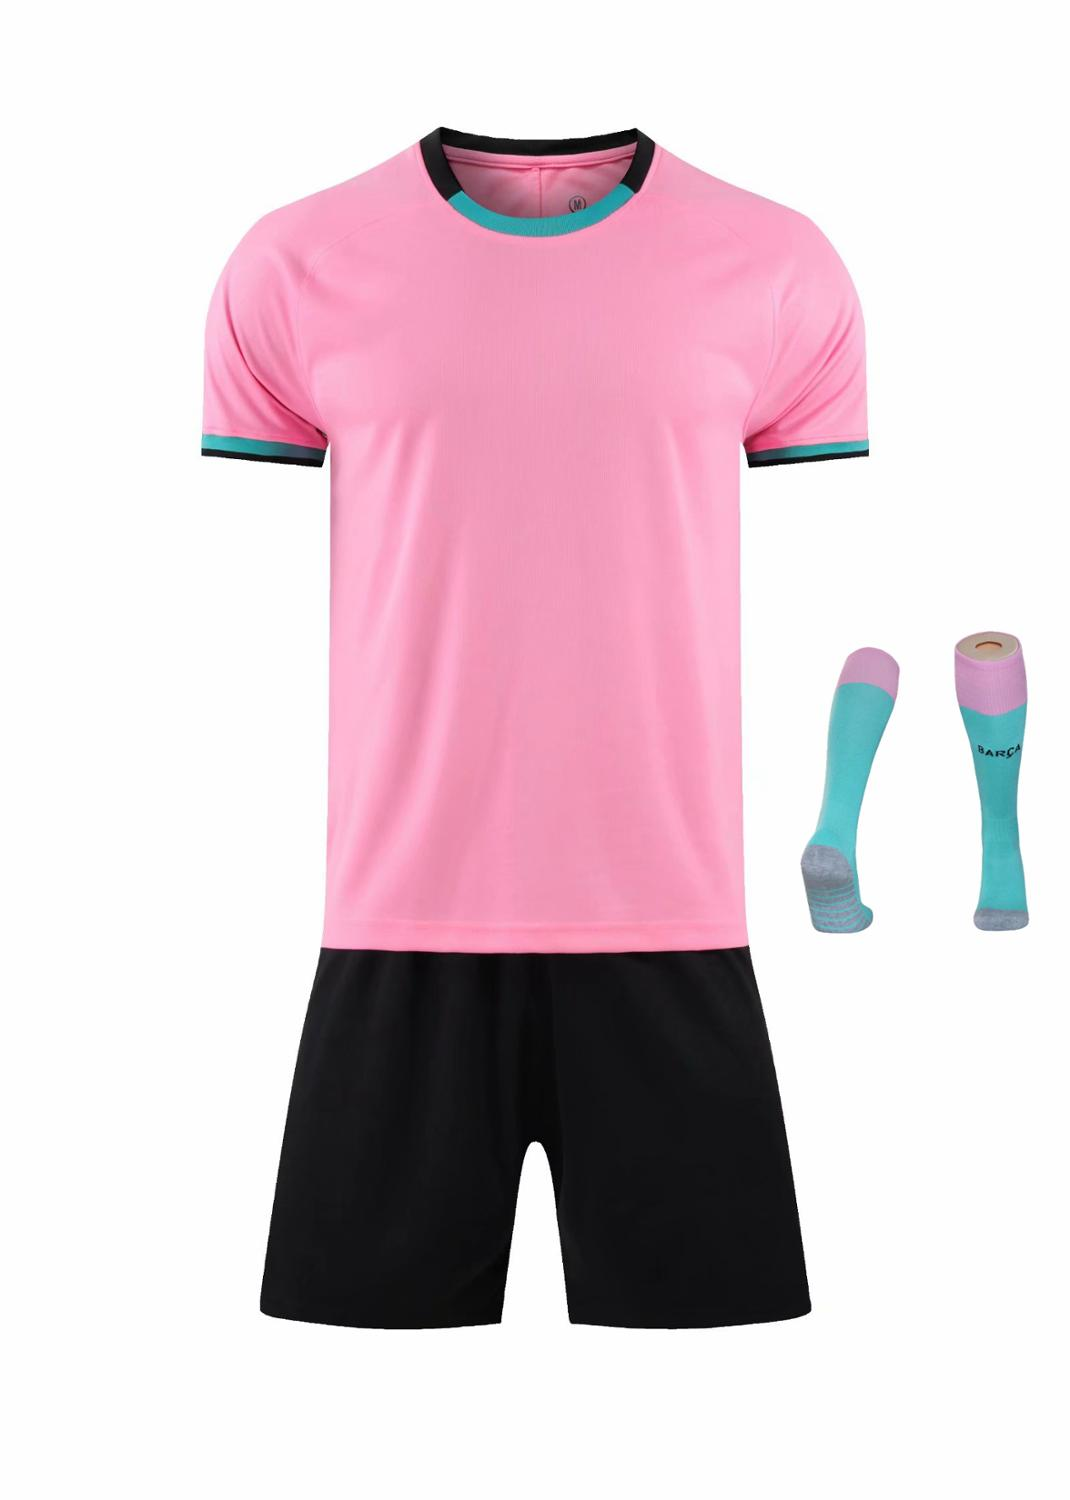 Children Sets football uniforms boys and girls sports kids youth training suits blank custom print soccer set with socks 23